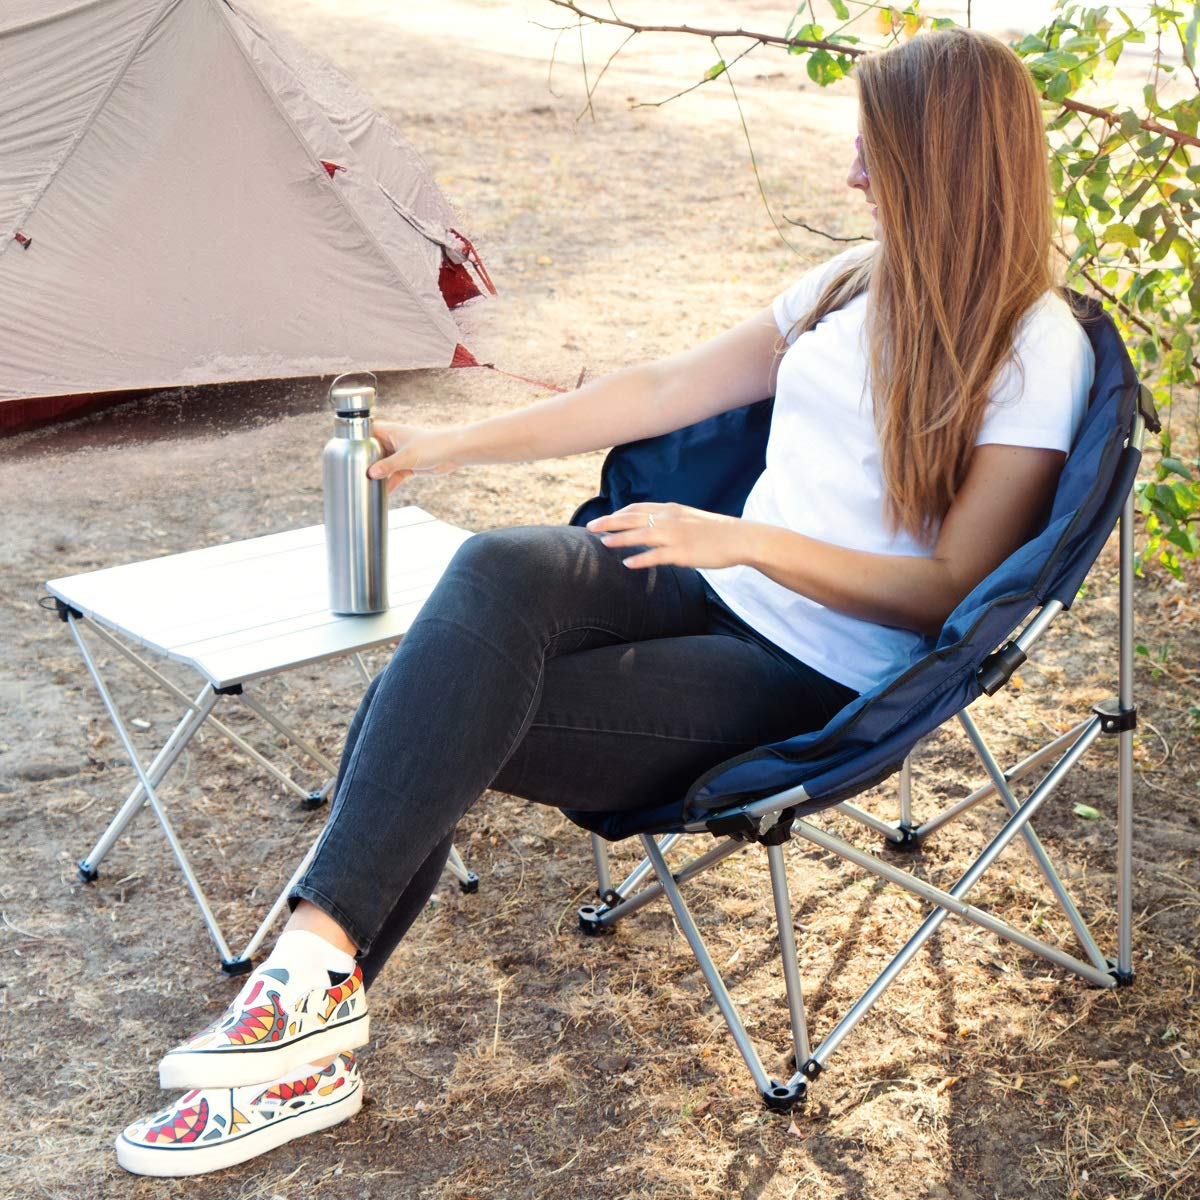 Navaris Portable Folding Chair - XXL Padded Moon Chair for Camping, Fishing, Festivals with Carrying Bag - Dark Blue